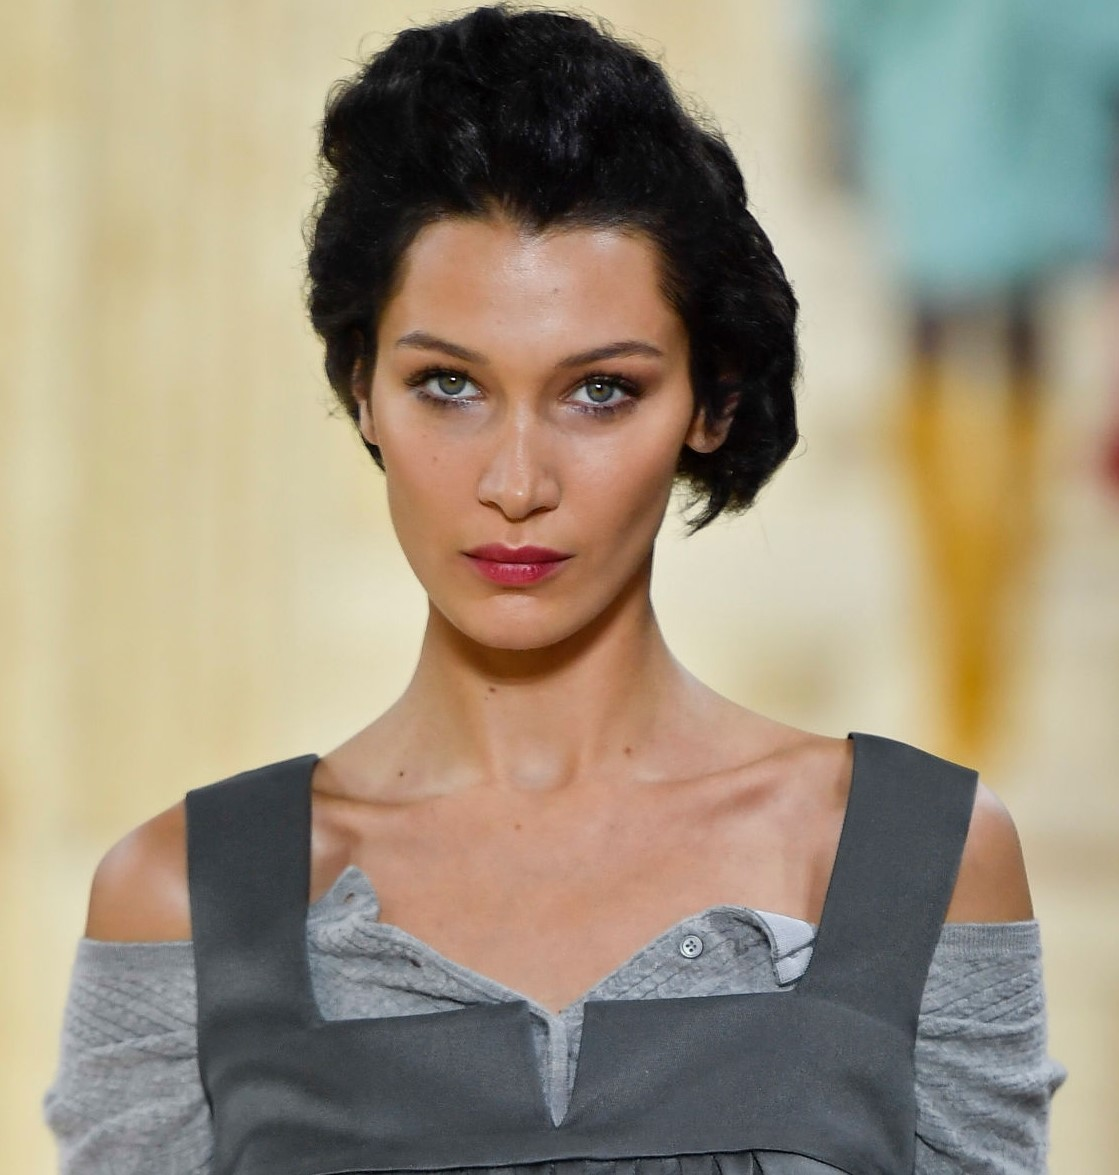 Bella Hadid's features closely matching the ideal ratio, according to science